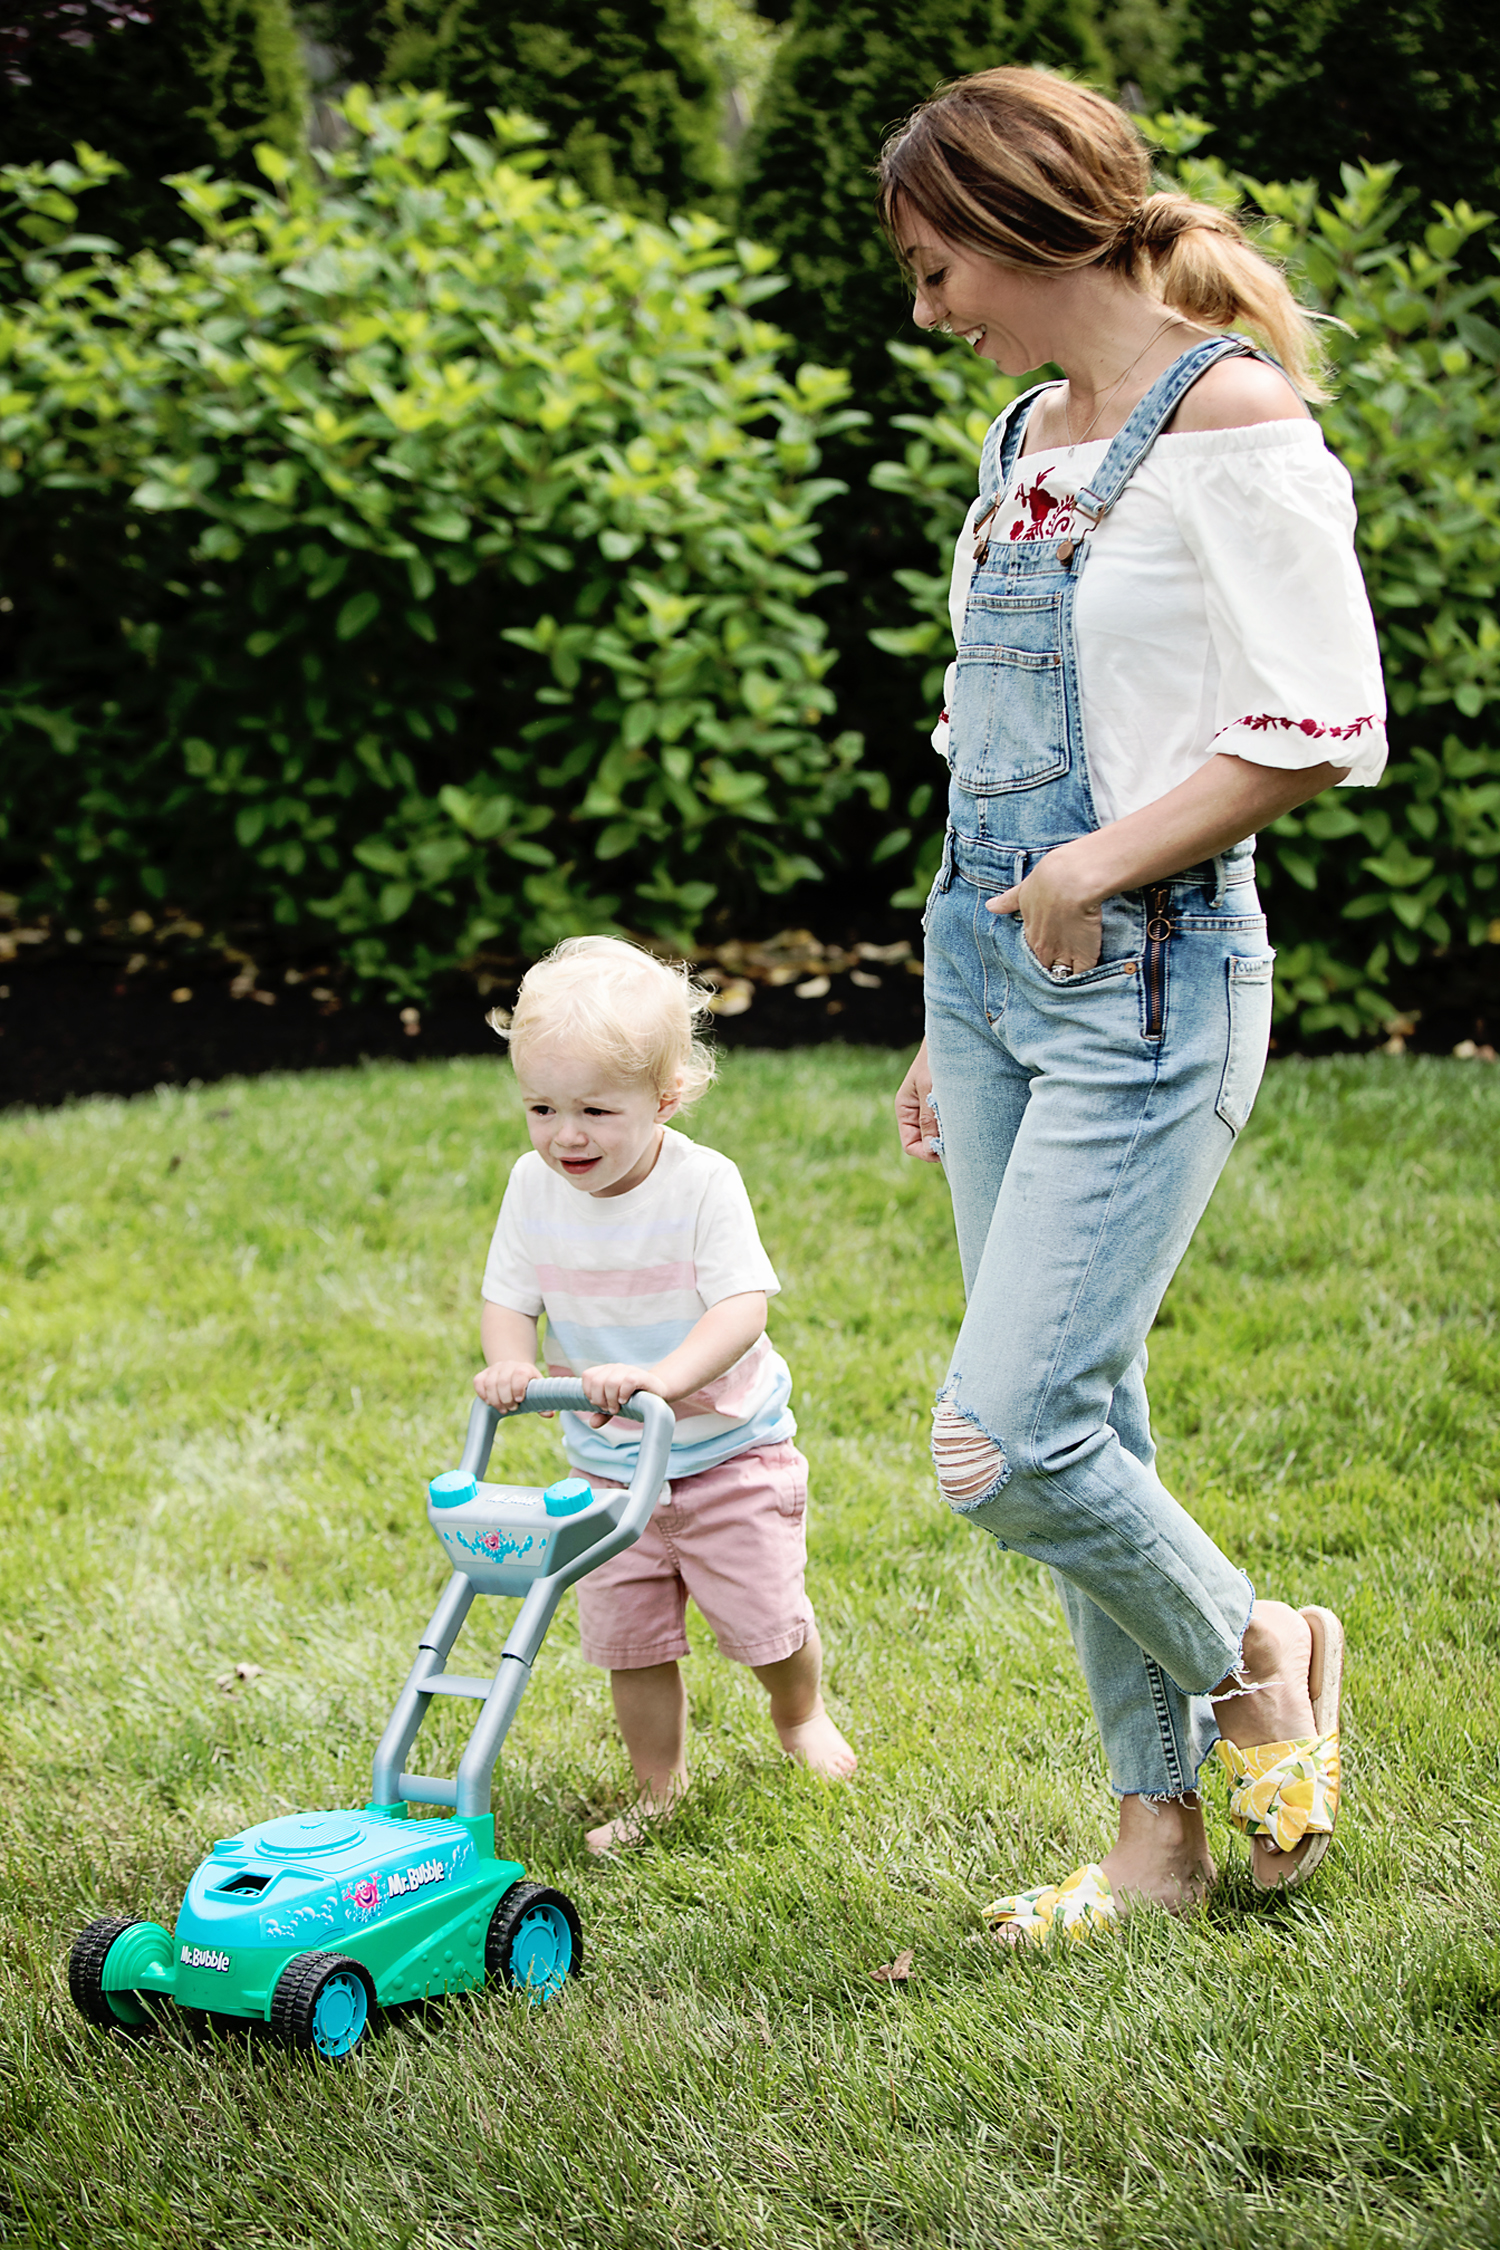 The motherchic wearing overalls